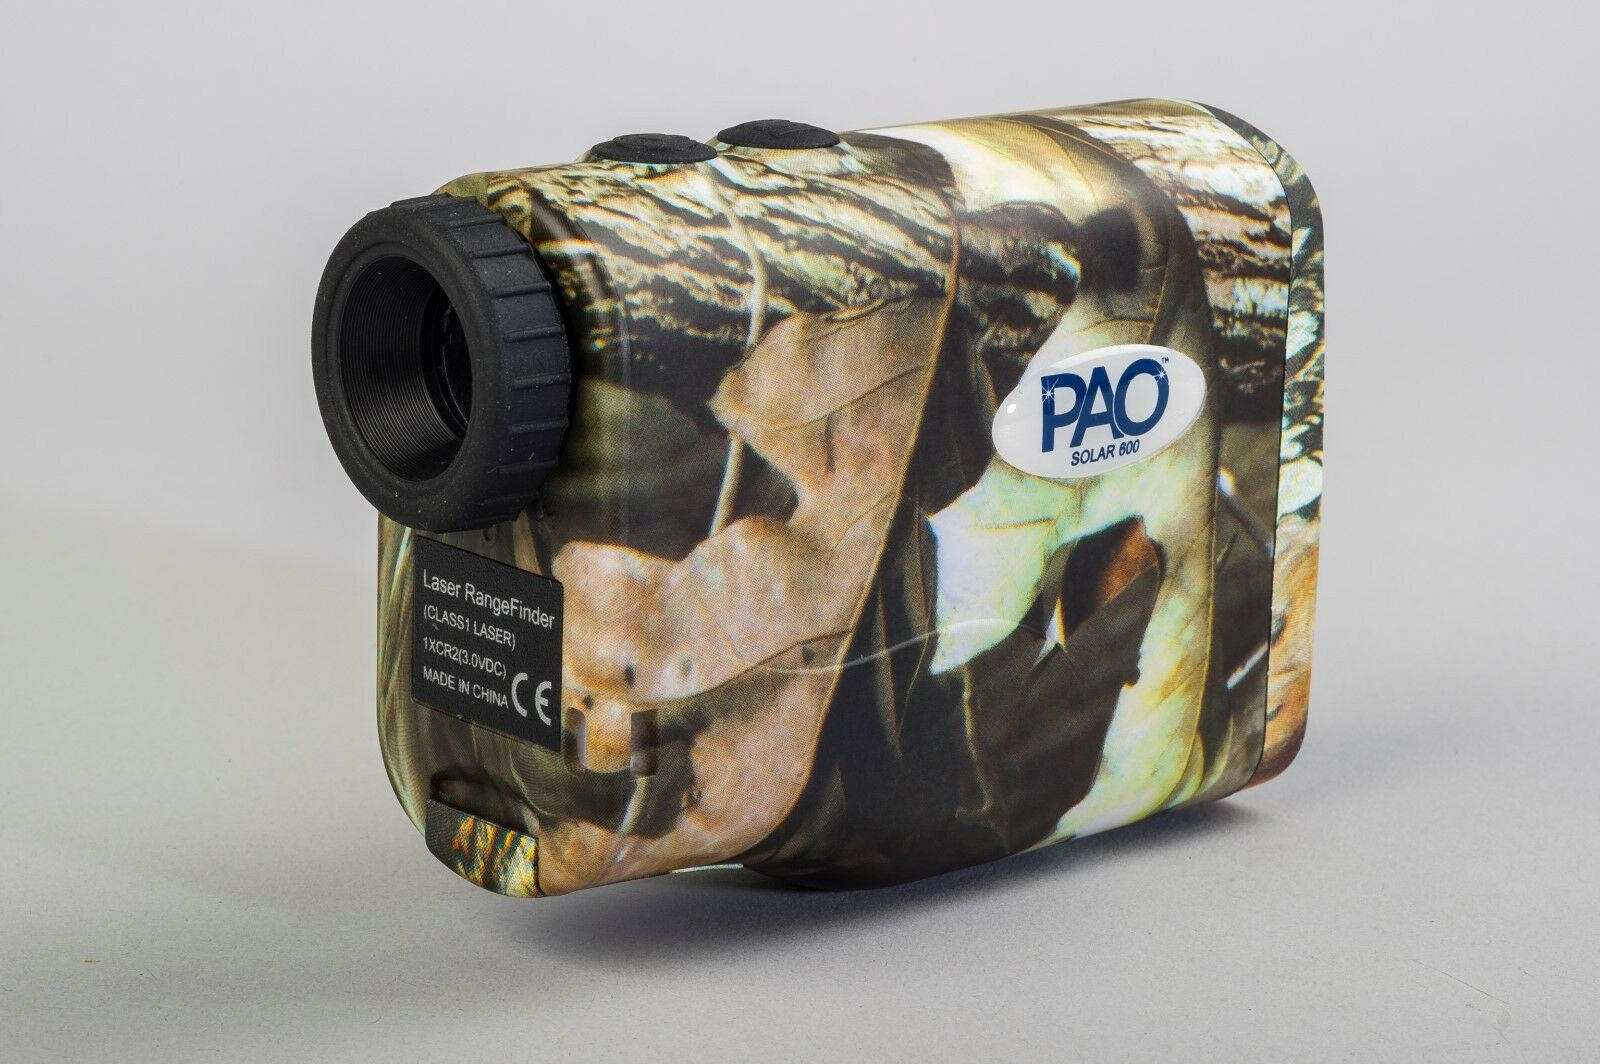 PAO®-Professional Airgun Optics Solar Powered Camo-Coated Laser Range Finder